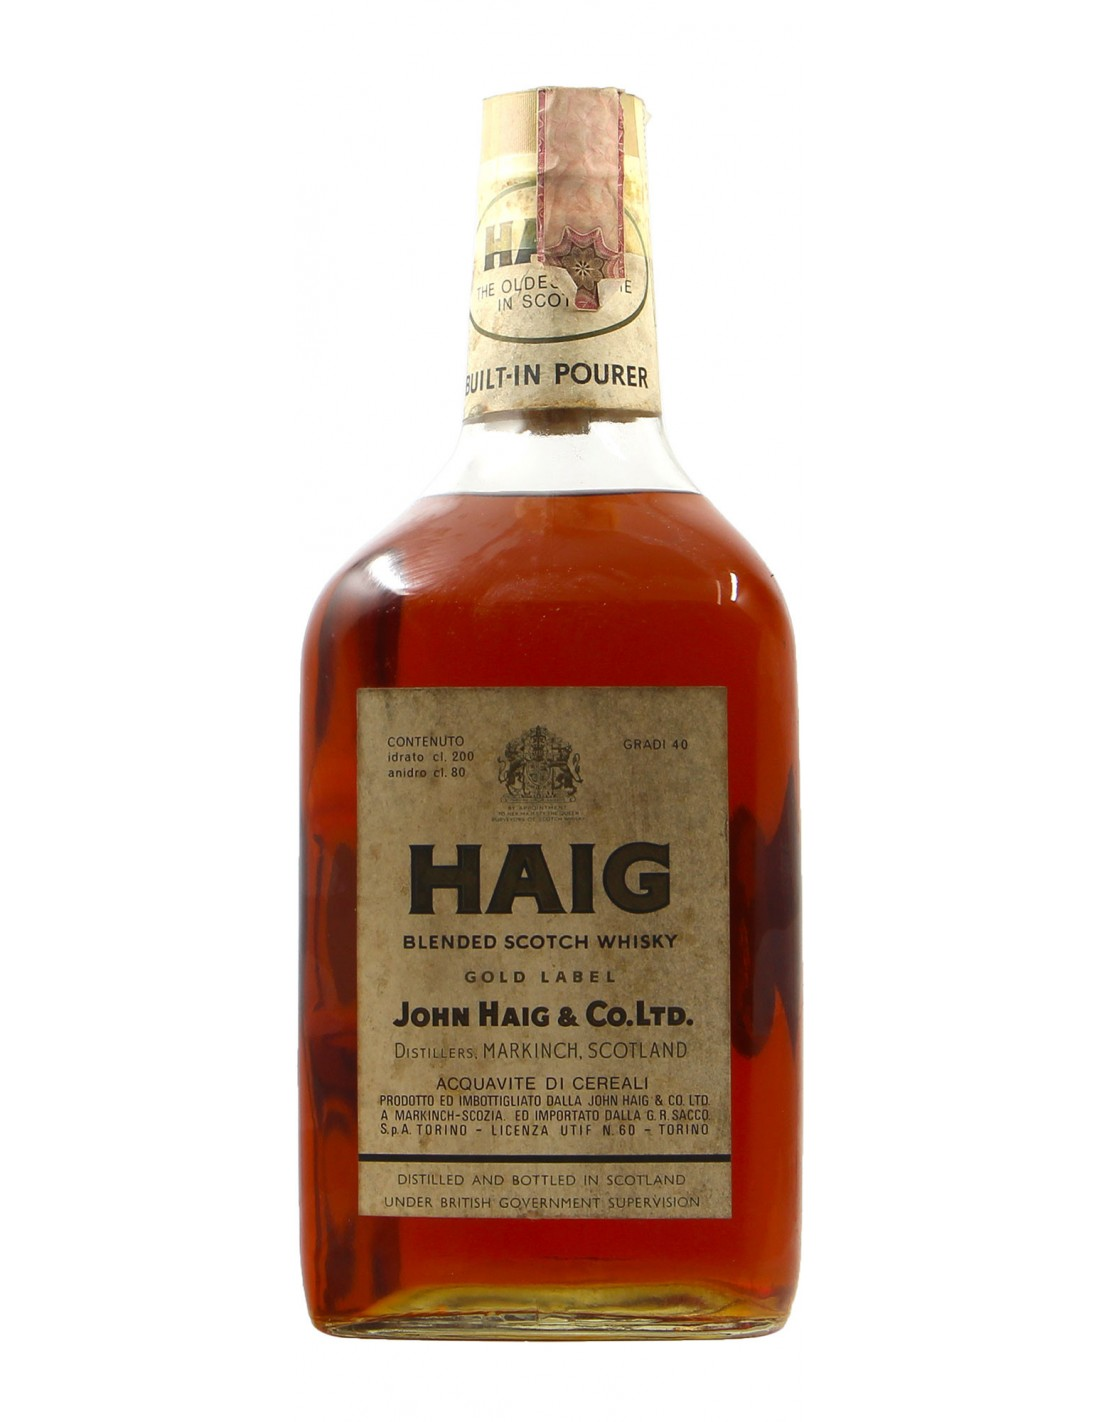 HAIG BLENDED SCOTCH WHISKY 2L NV JOHN HAIG & CO Grandi Bottiglie